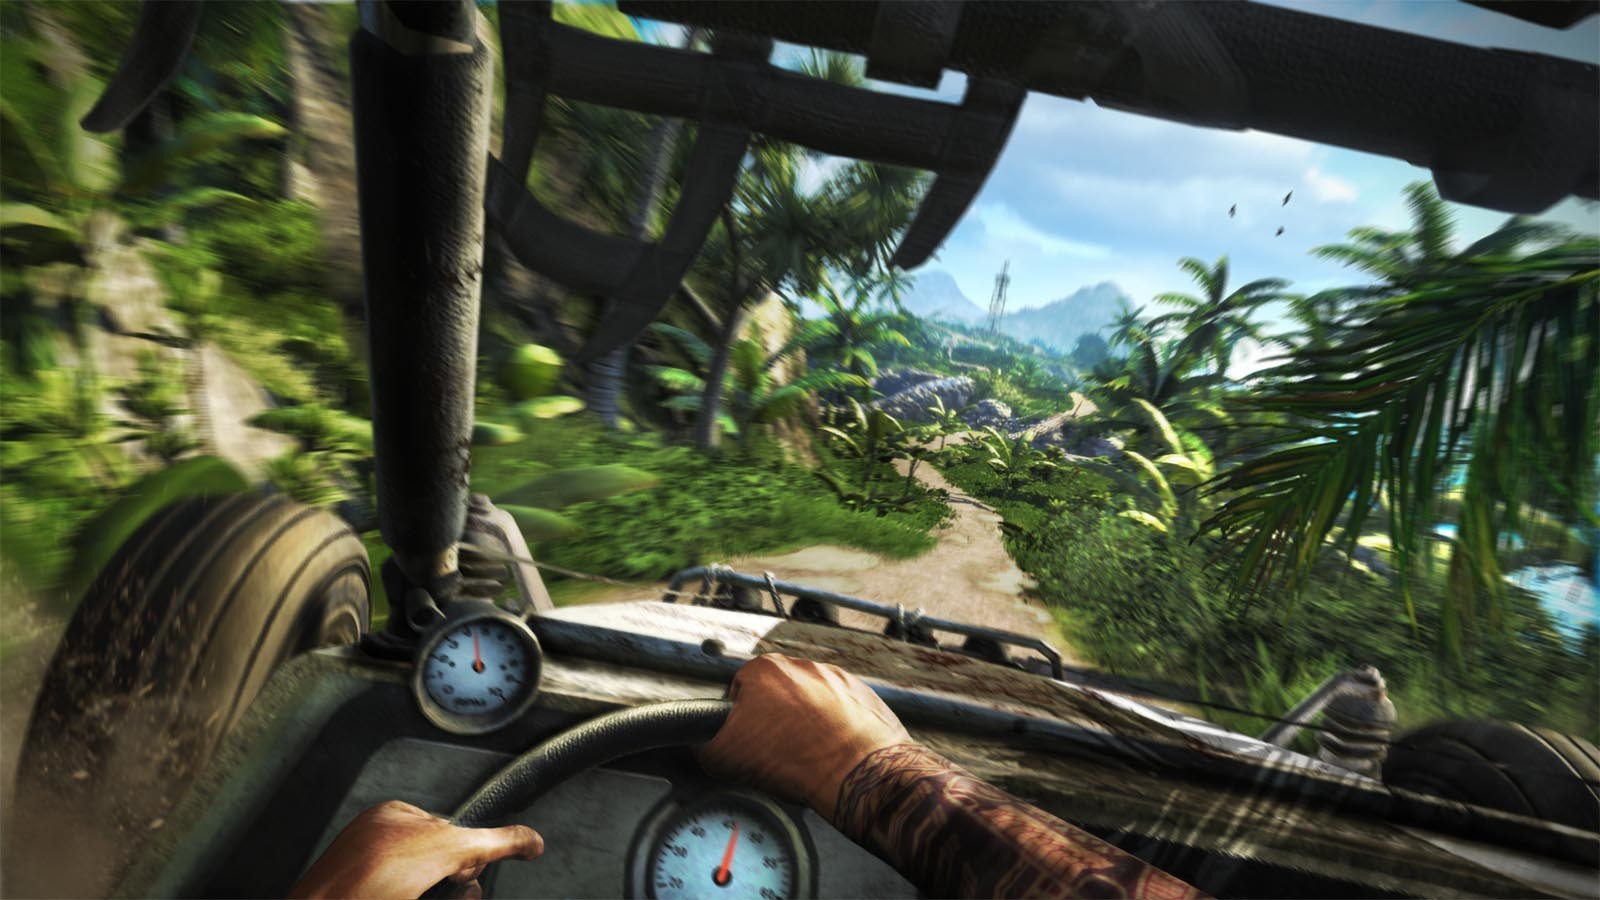 Far Cry 3 [Uplay Ubisoft Connect] for PC - Buy now